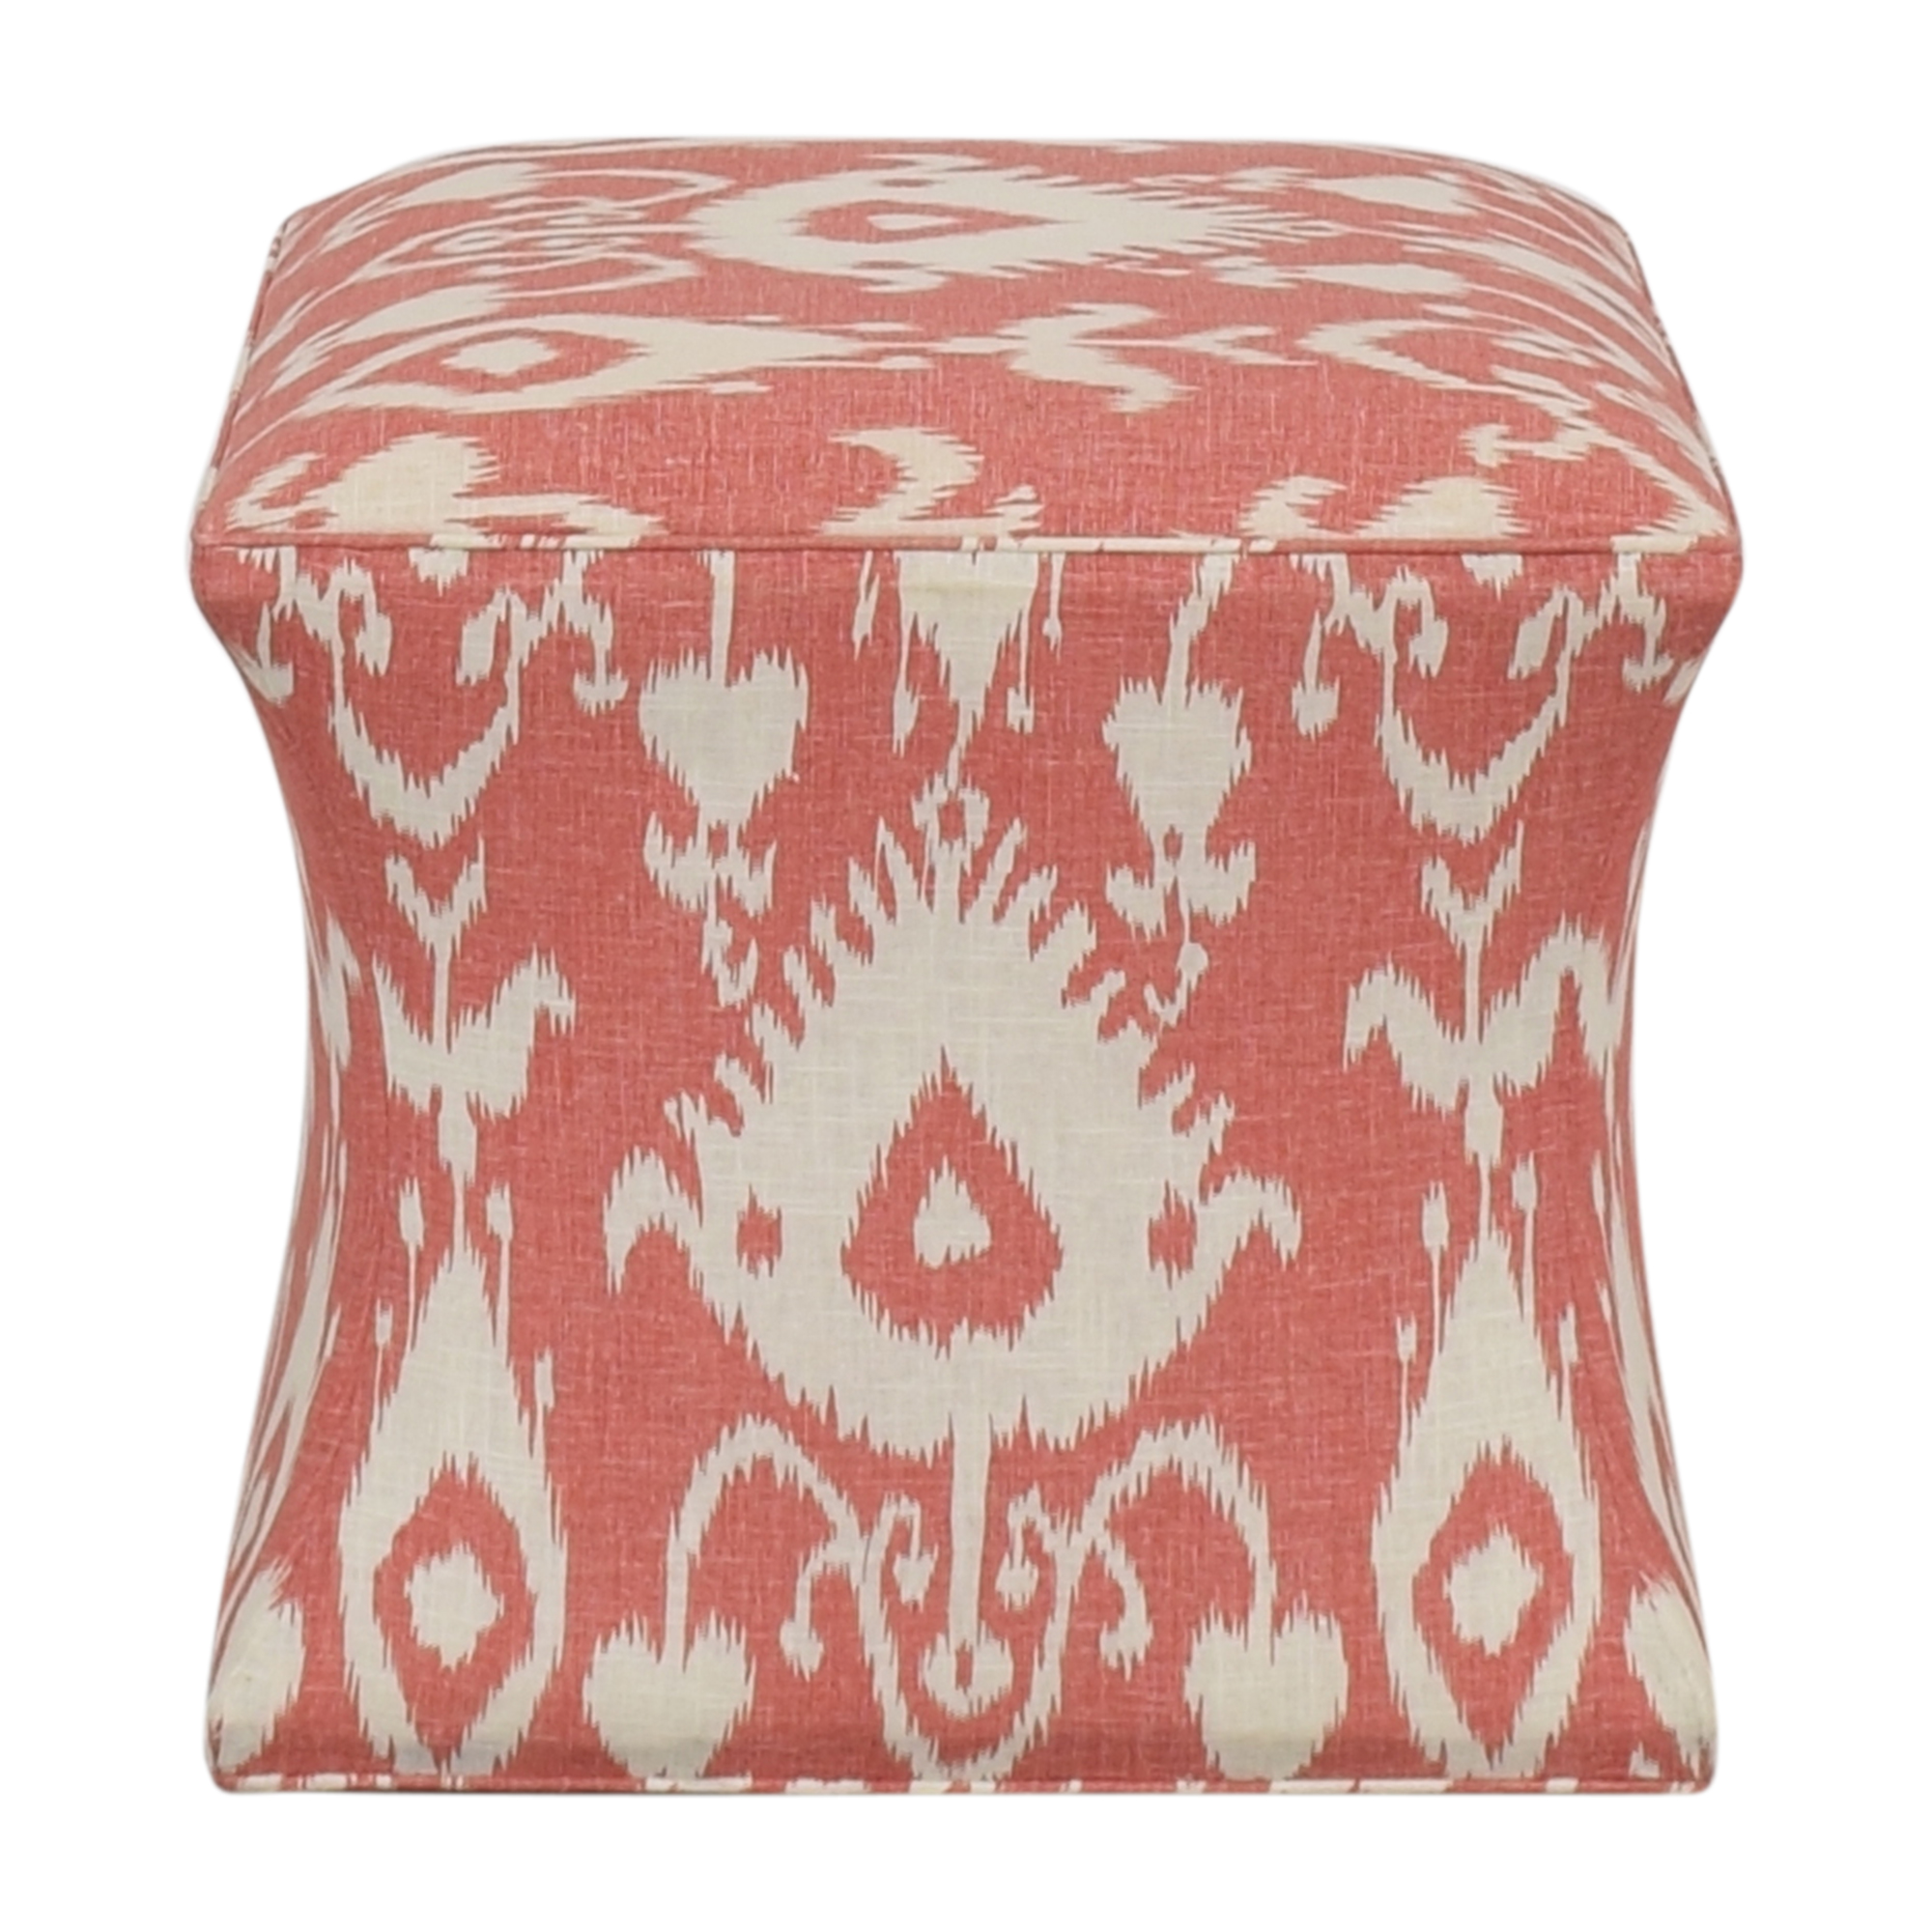 shop  Upholstered Square Ottoman online